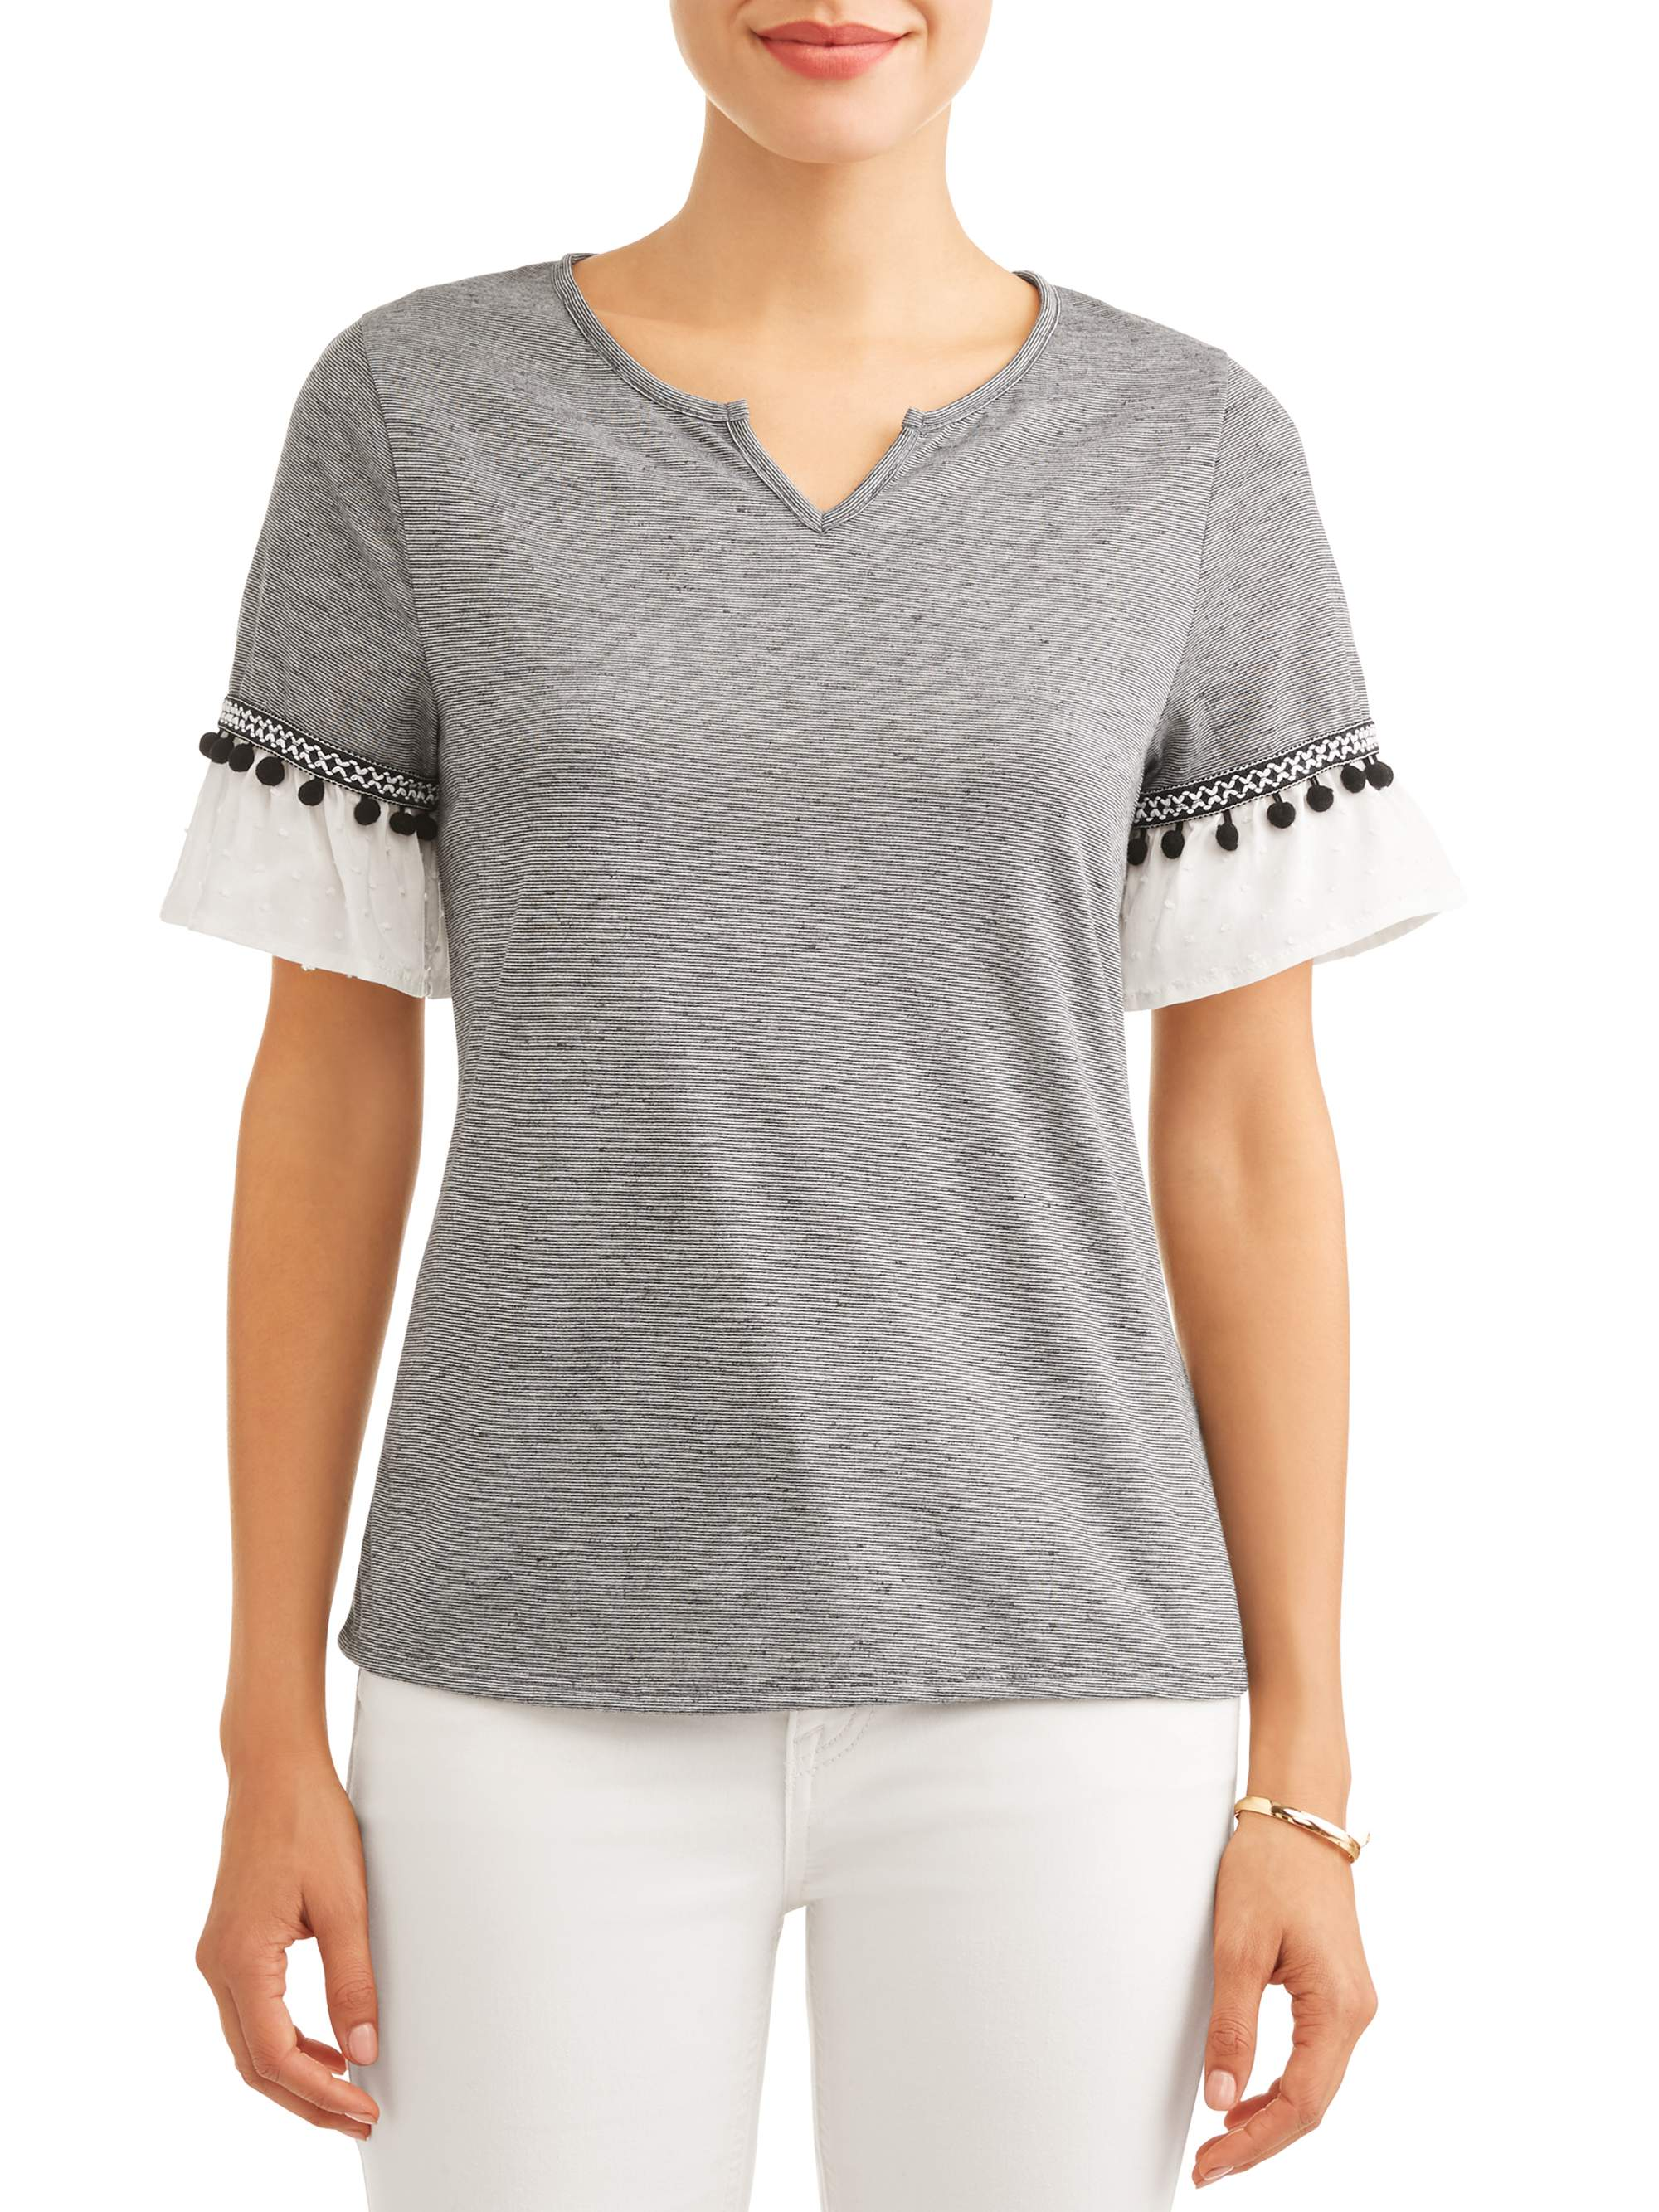 Women's Ruffle Short Sleeve T-Shirt with Pom Pom Detail